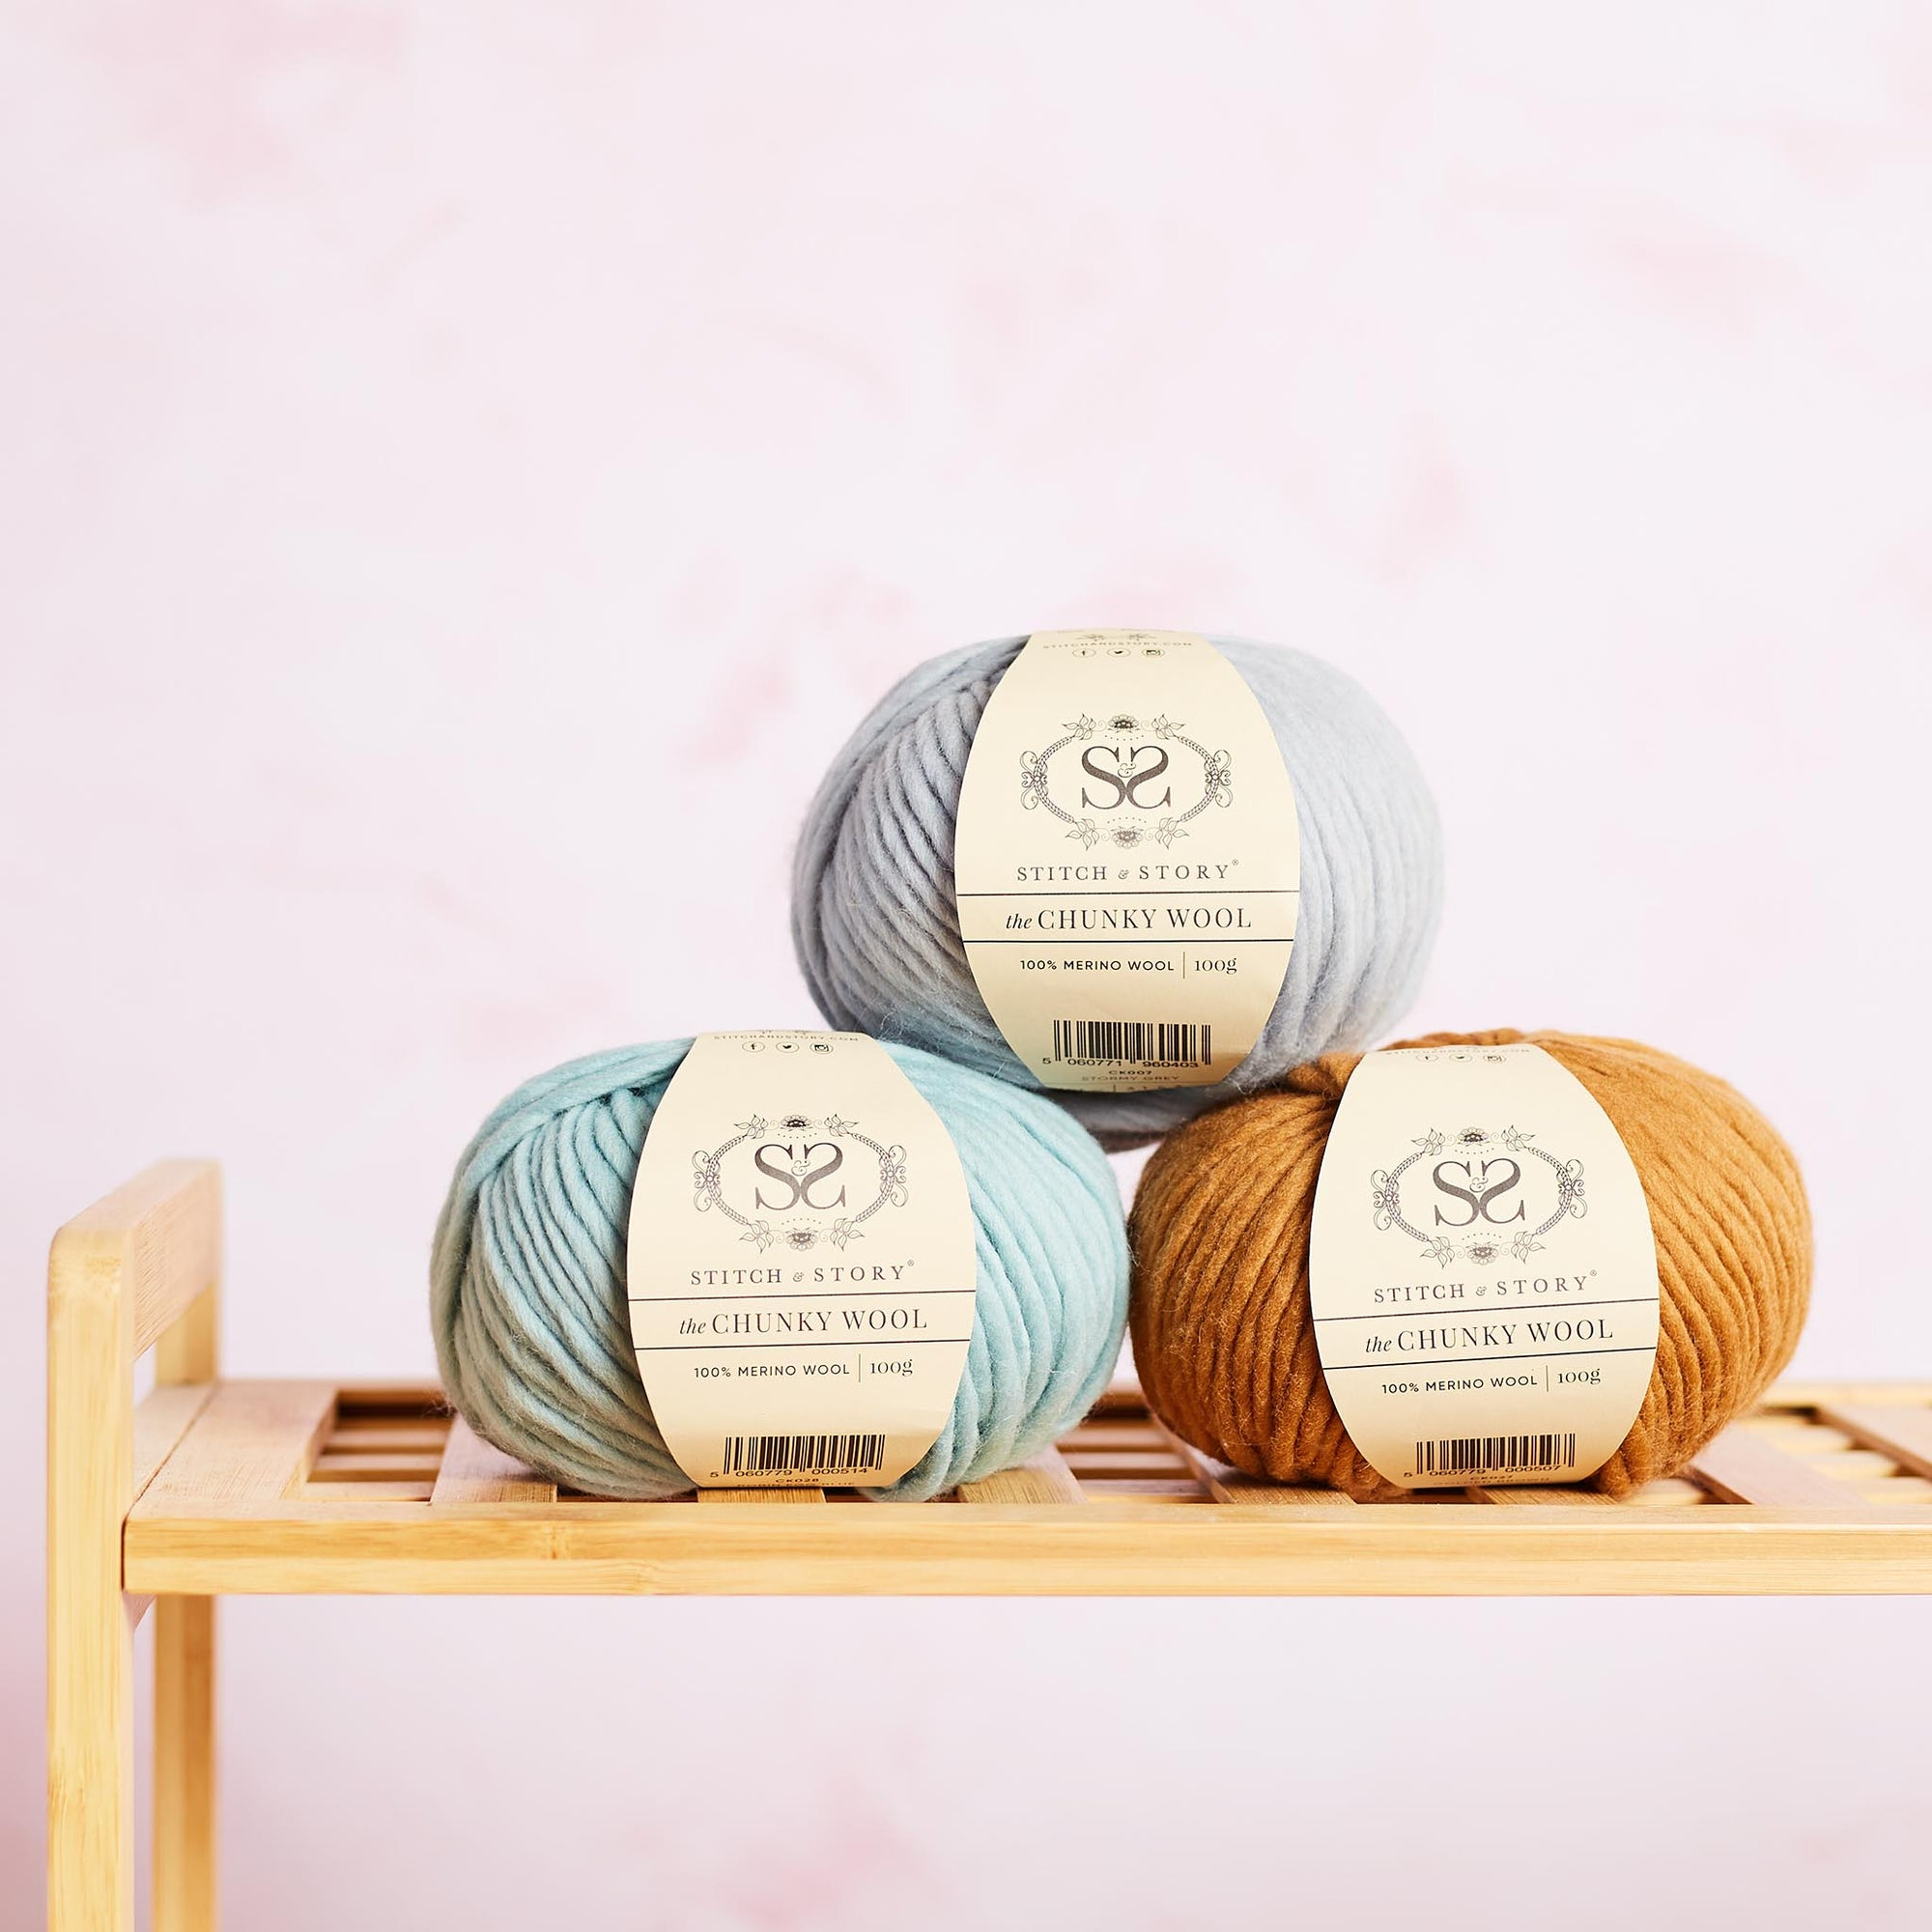 The Chunky Wool 100g balls